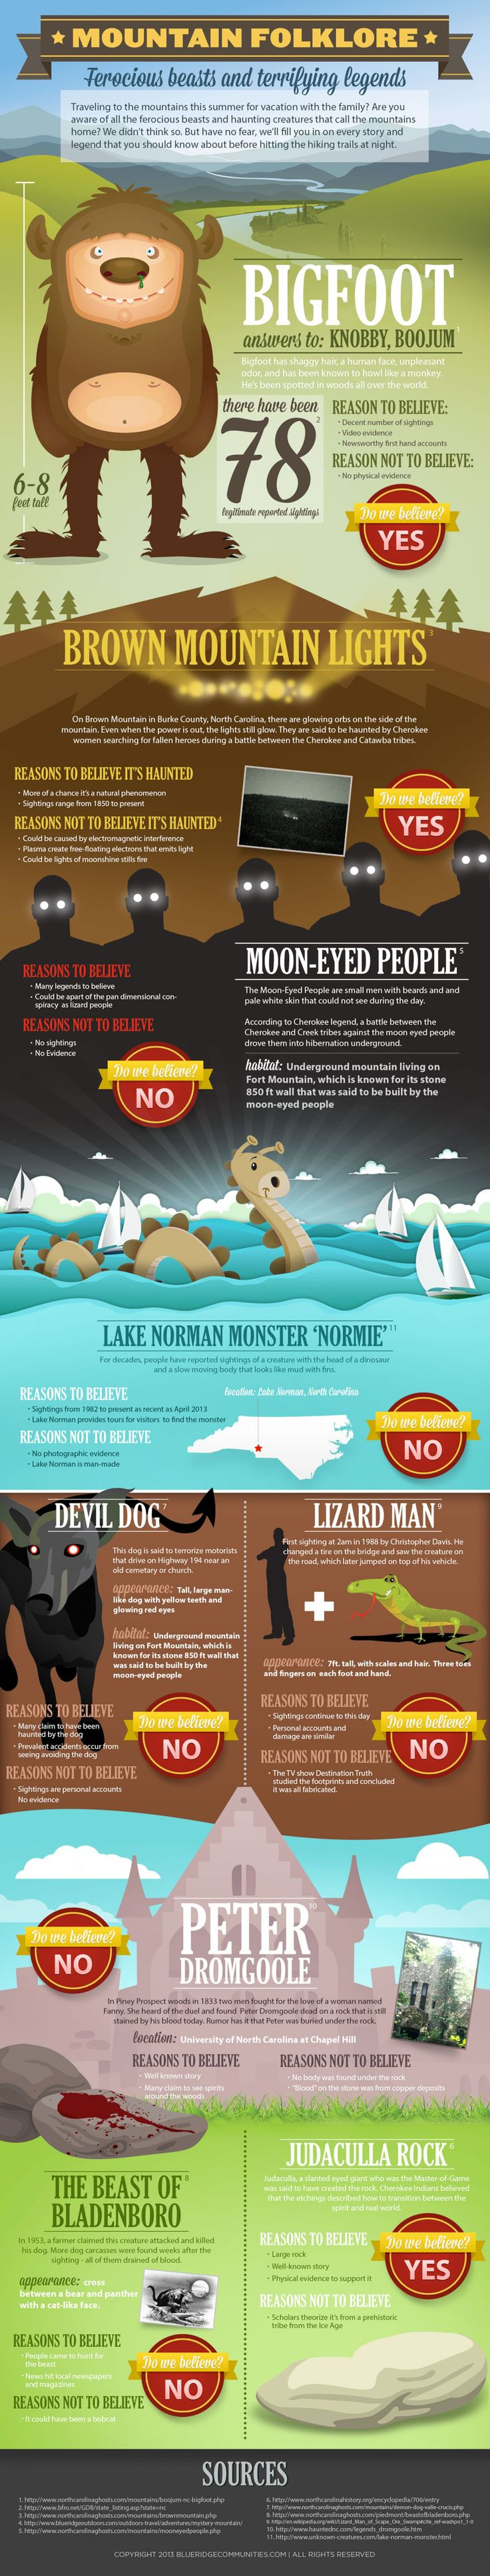 Mountain Folklore Infographic ~ Ferocious beasts and terrifying legends of mountain folklore. From Bigfoot to Brown Mountain Lights